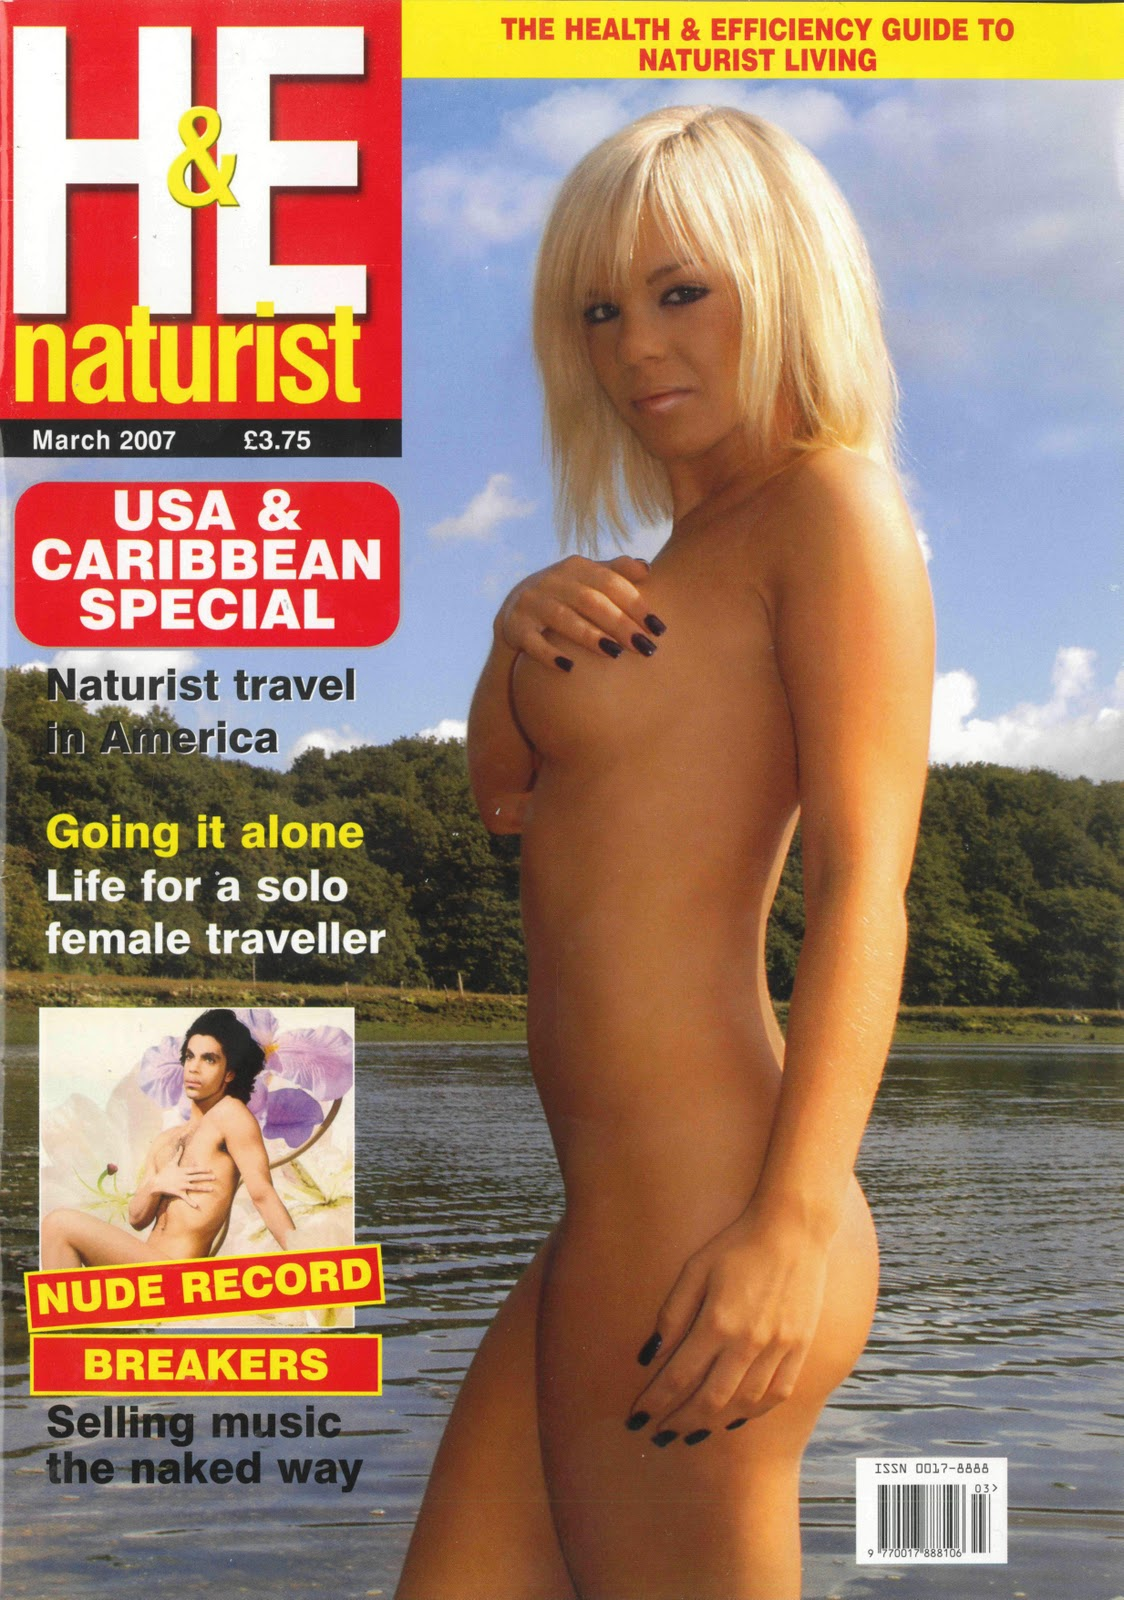 jung und frie nudist naturist archives of the 2000s